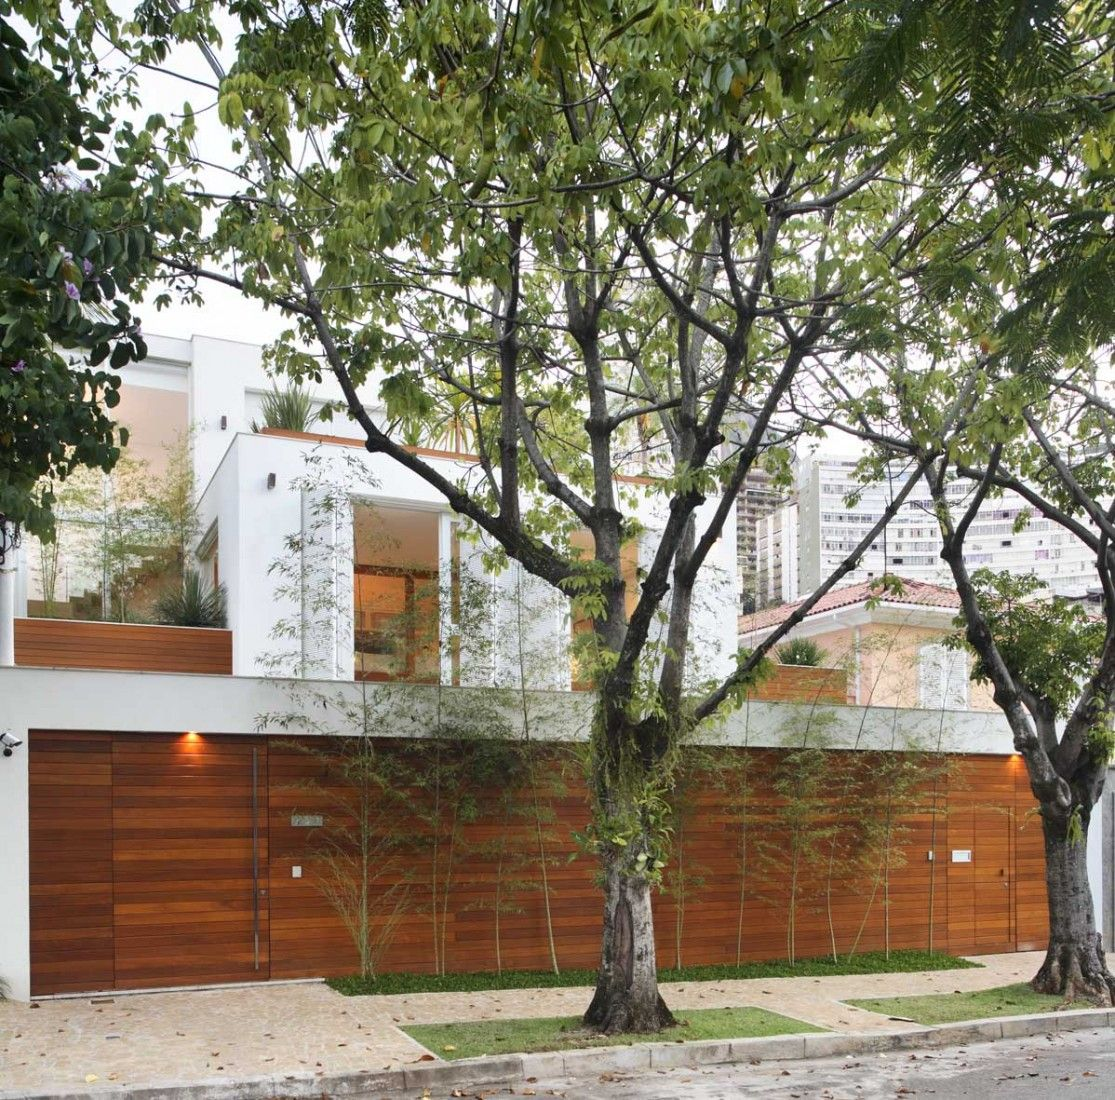 The Leblon House Progetto Architetura & Interiores